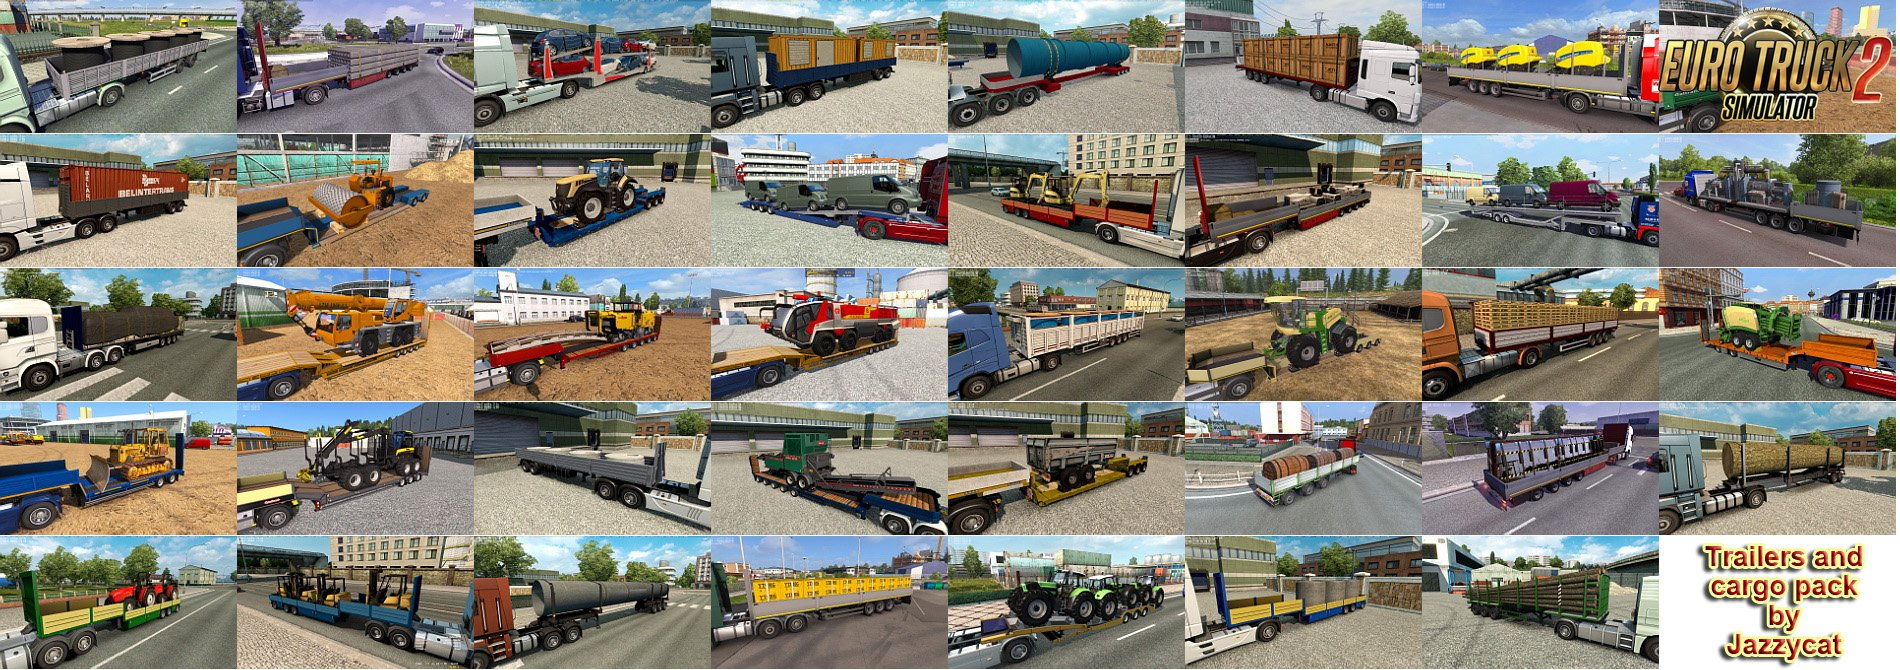 Trailers and Cargo Pack v8.7.1 by Jazzycat (1.38.x)